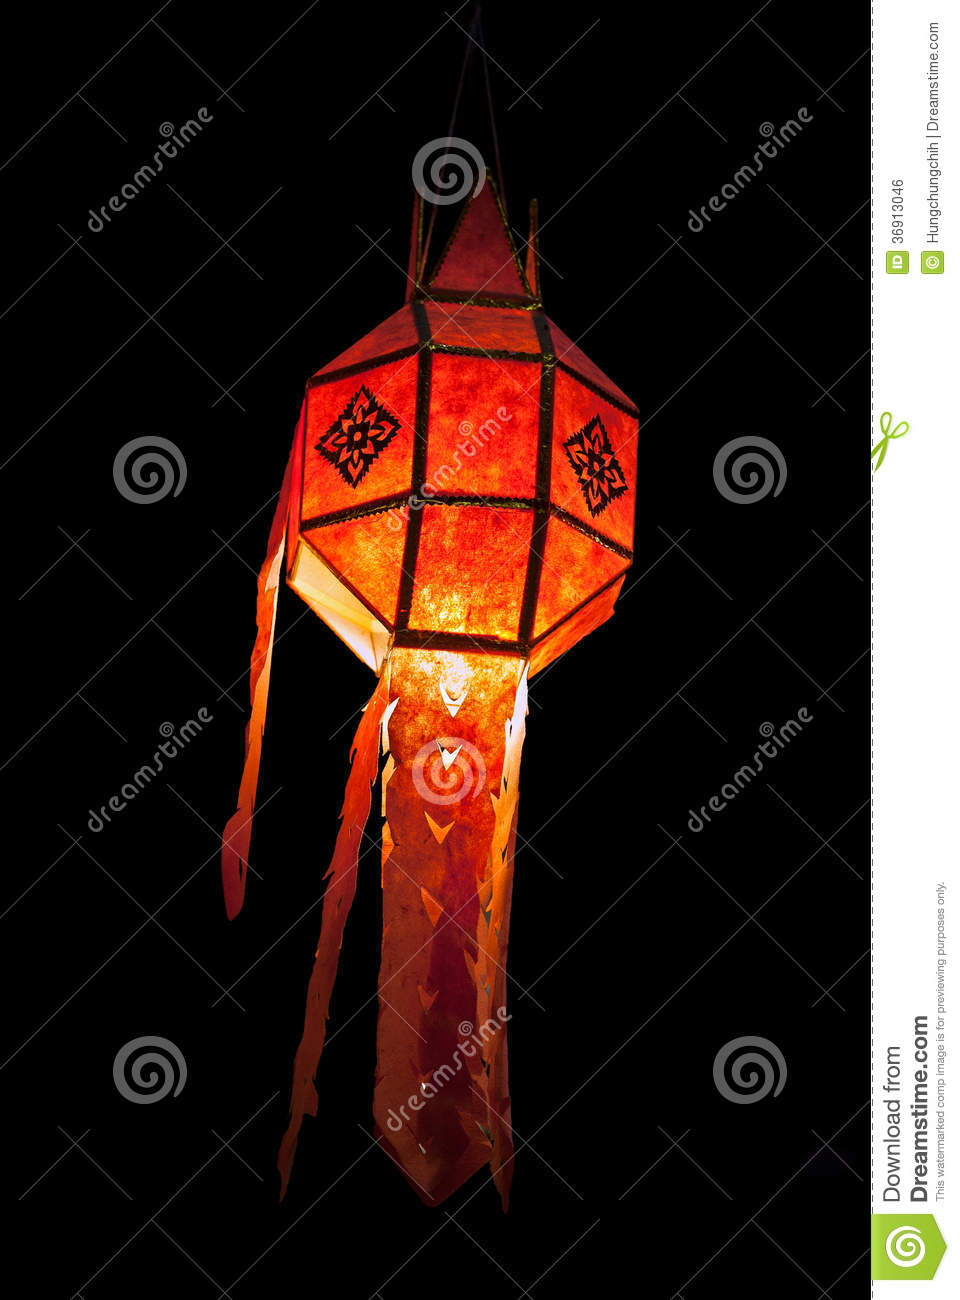 lantern festivals in asia essay Being an asia aware how did the customs and traditions of the lantern festival begin as a class find photographs from earlier lantern festivals and discuss the.